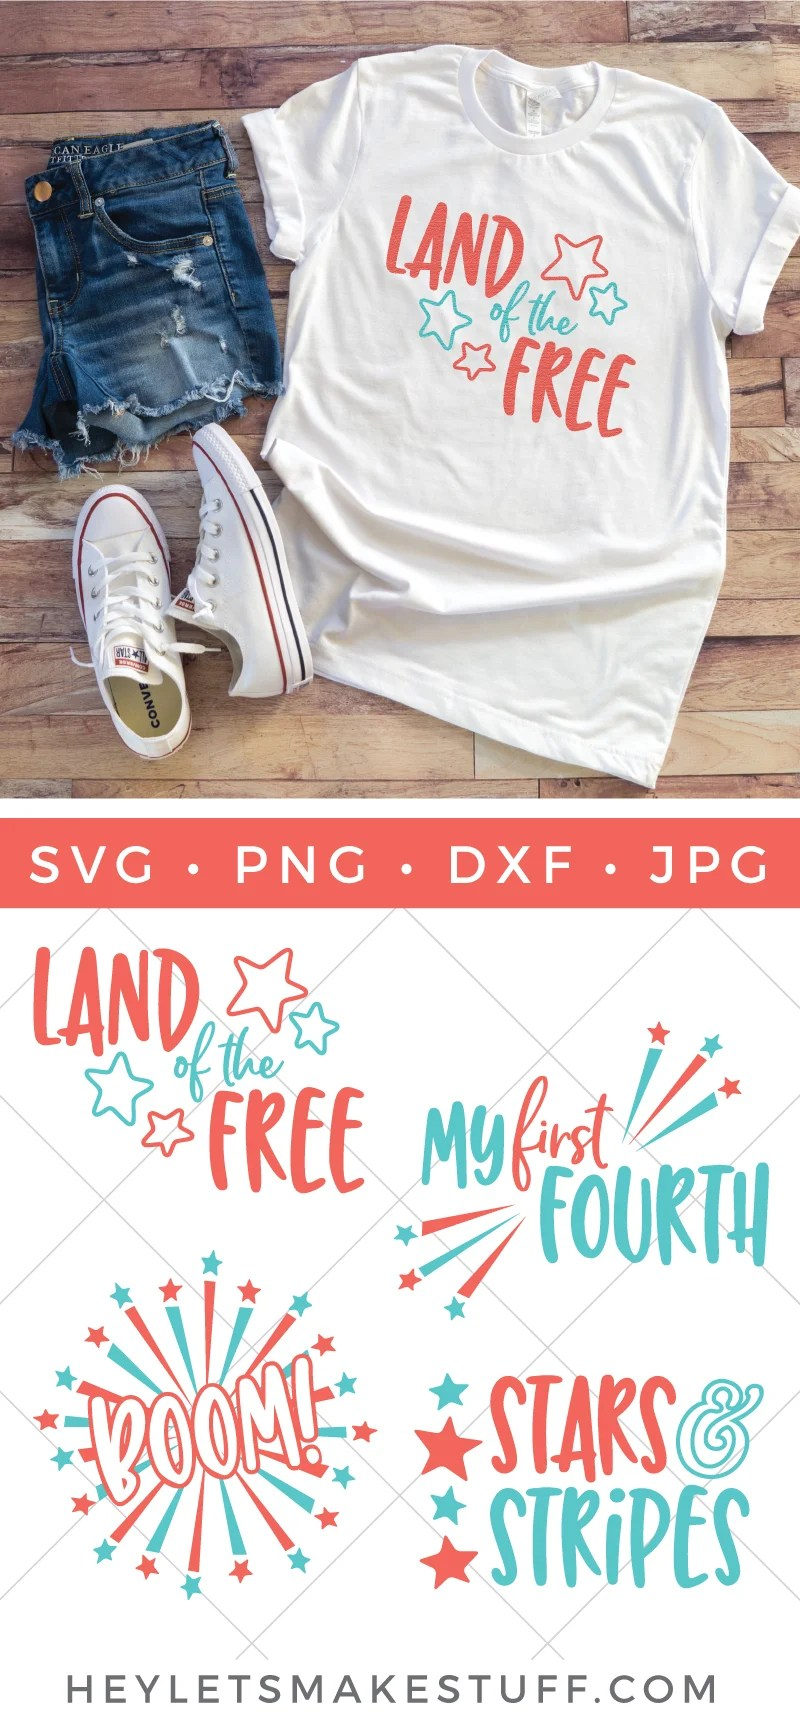 Celebrate the 4th with patriotic crafts and decor. This Fourth of July SVG Bundle has all you need to add some flare of the 4th to your tote bags, water bottles, party decor and much more. via @heyletsmakestuf